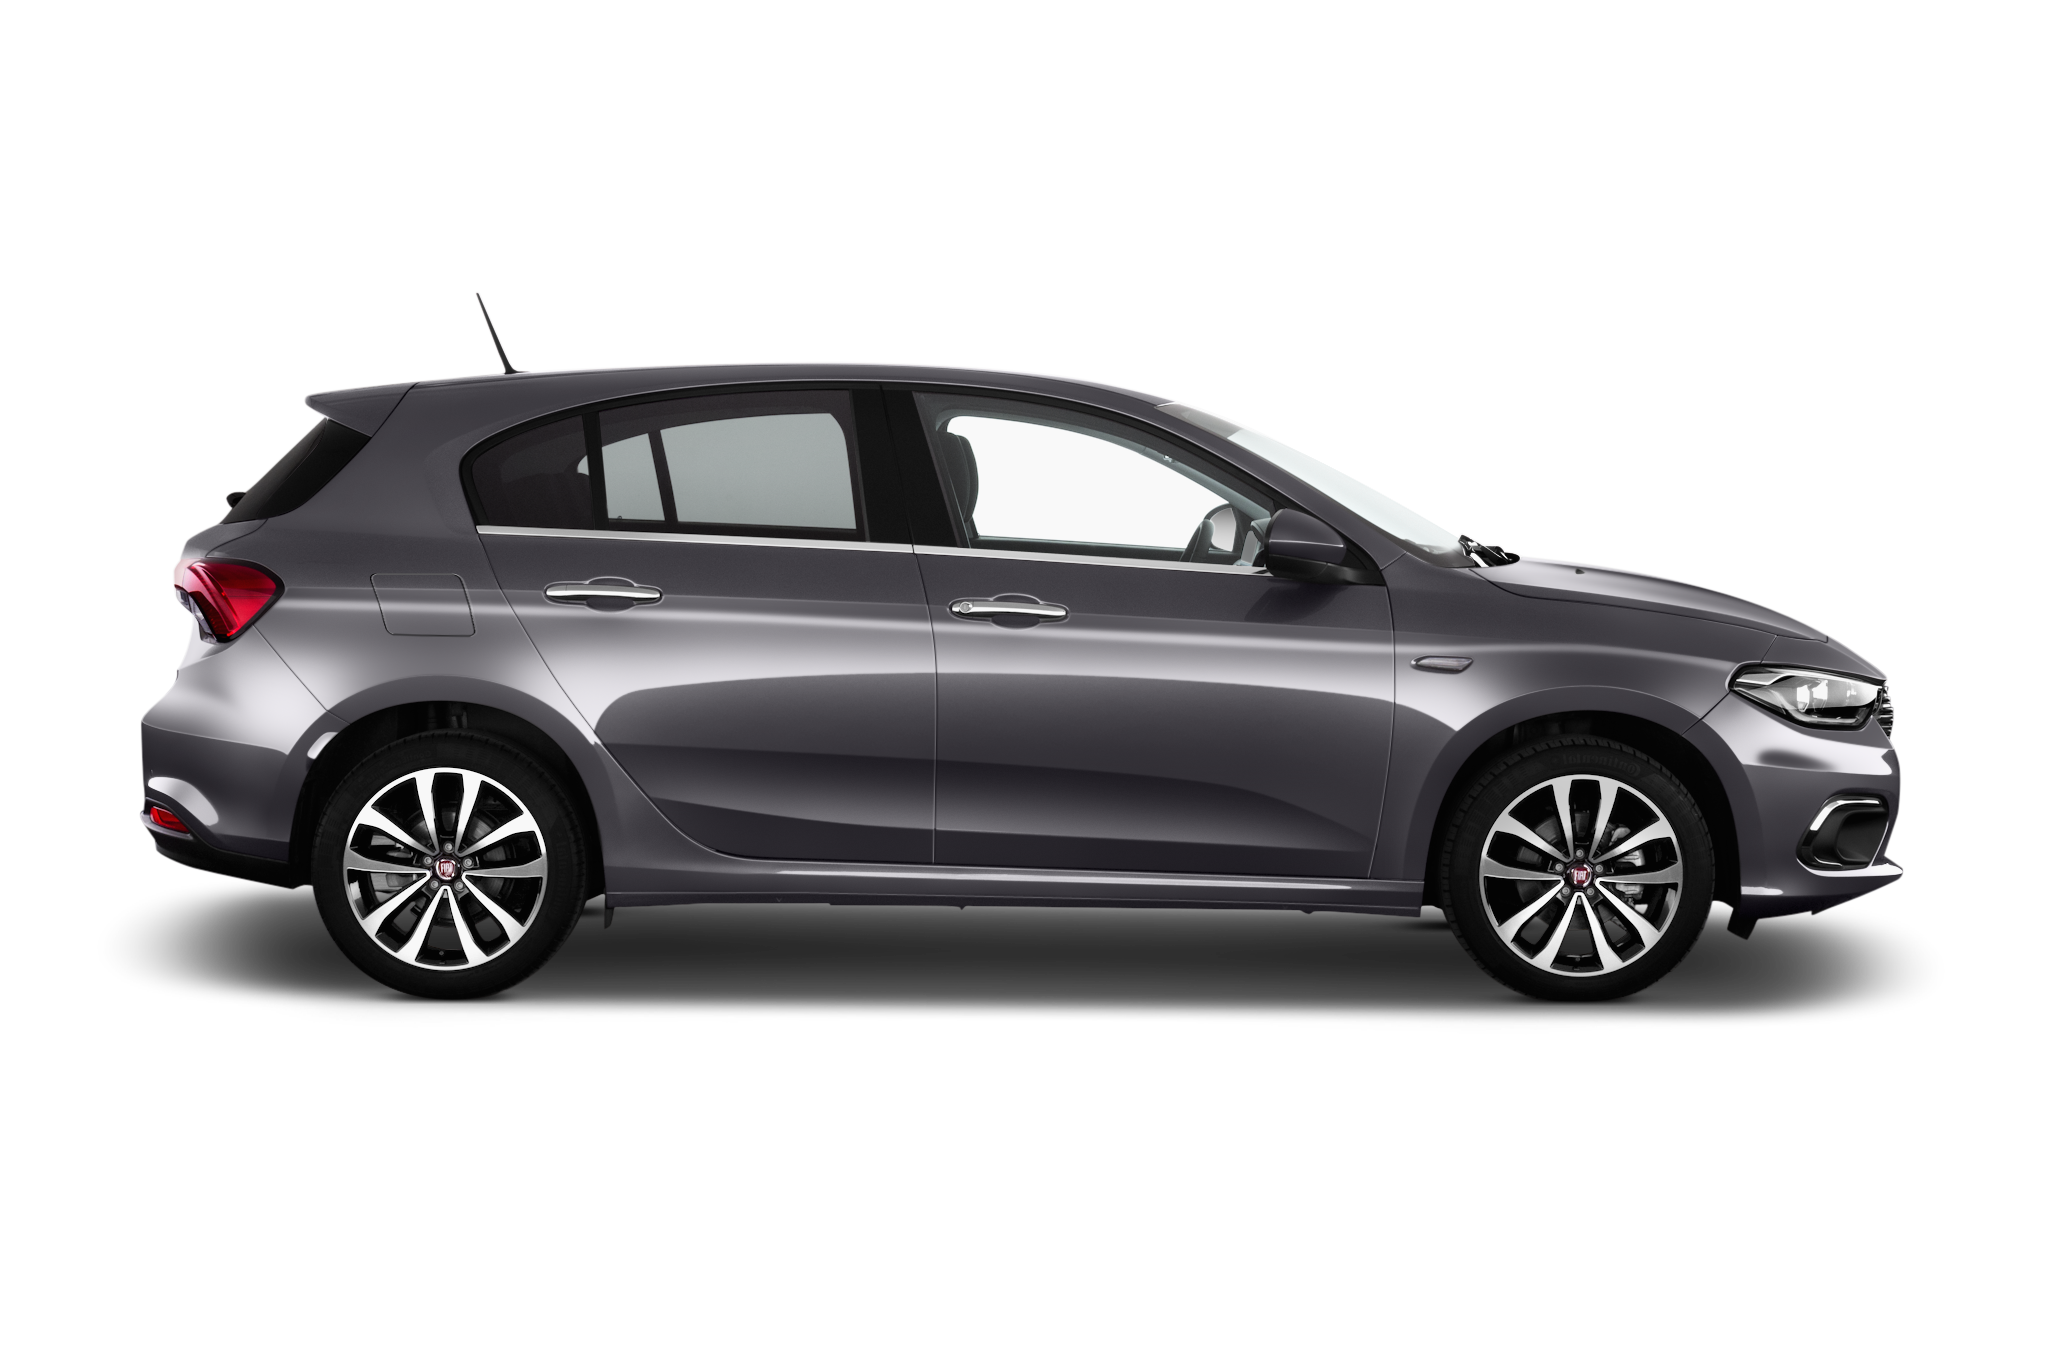 Fiat Tipo company car side view